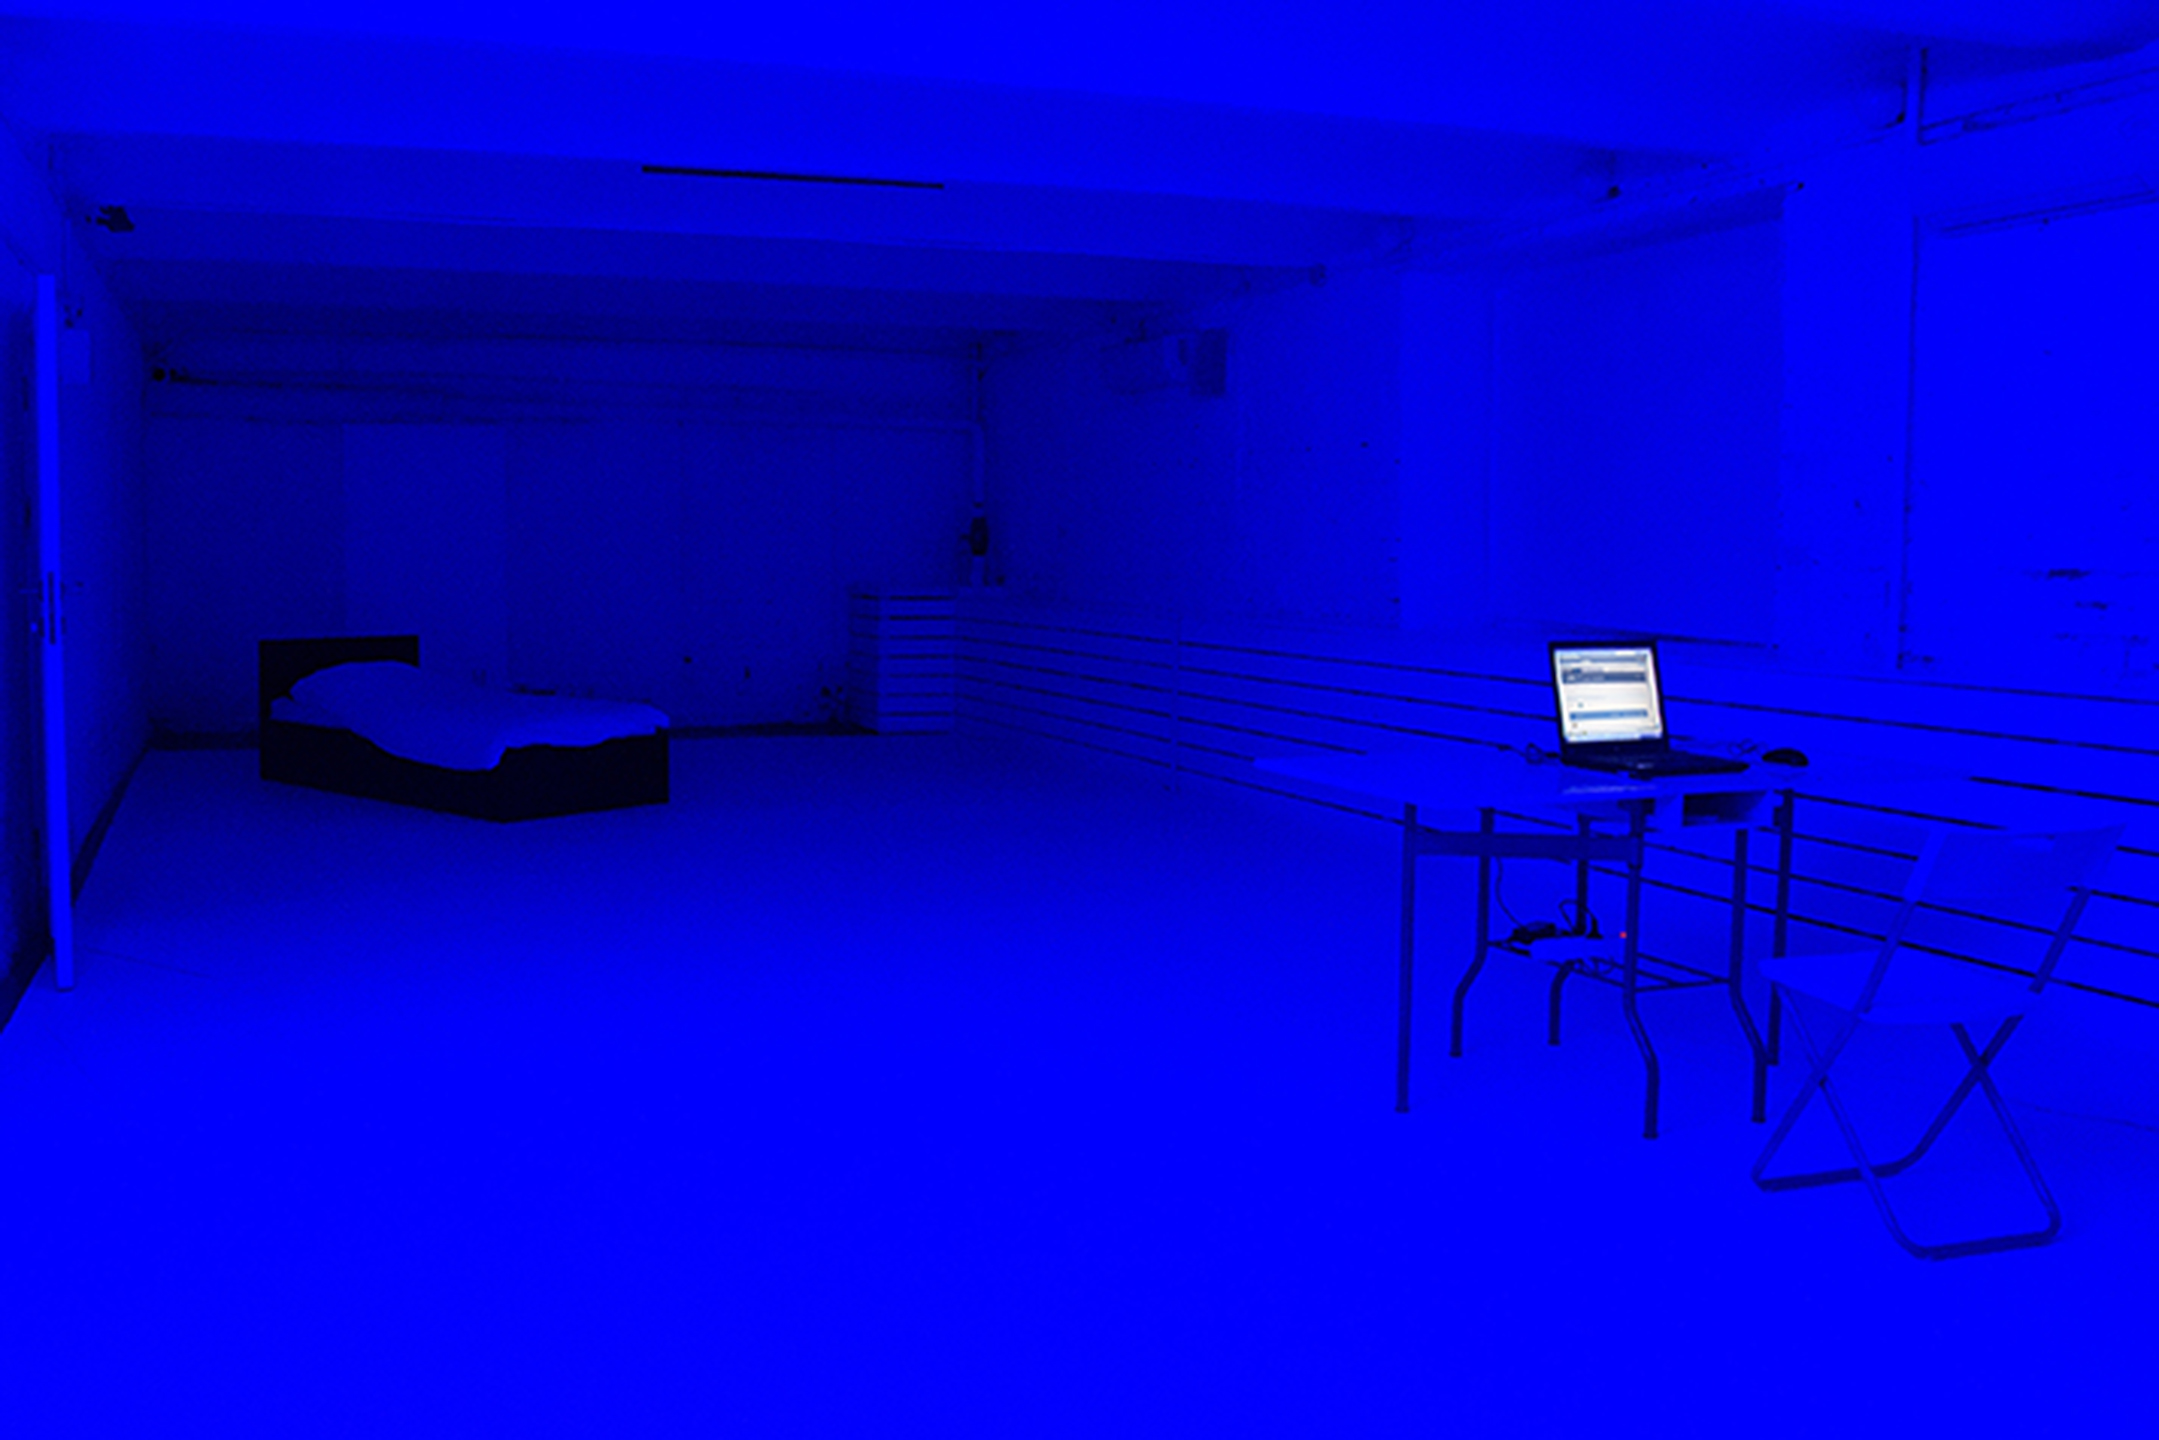 Iceberg-18010813. Blue Room, constructed situation. Curated by Ivan Isaev, Moscow, Russia, 2018